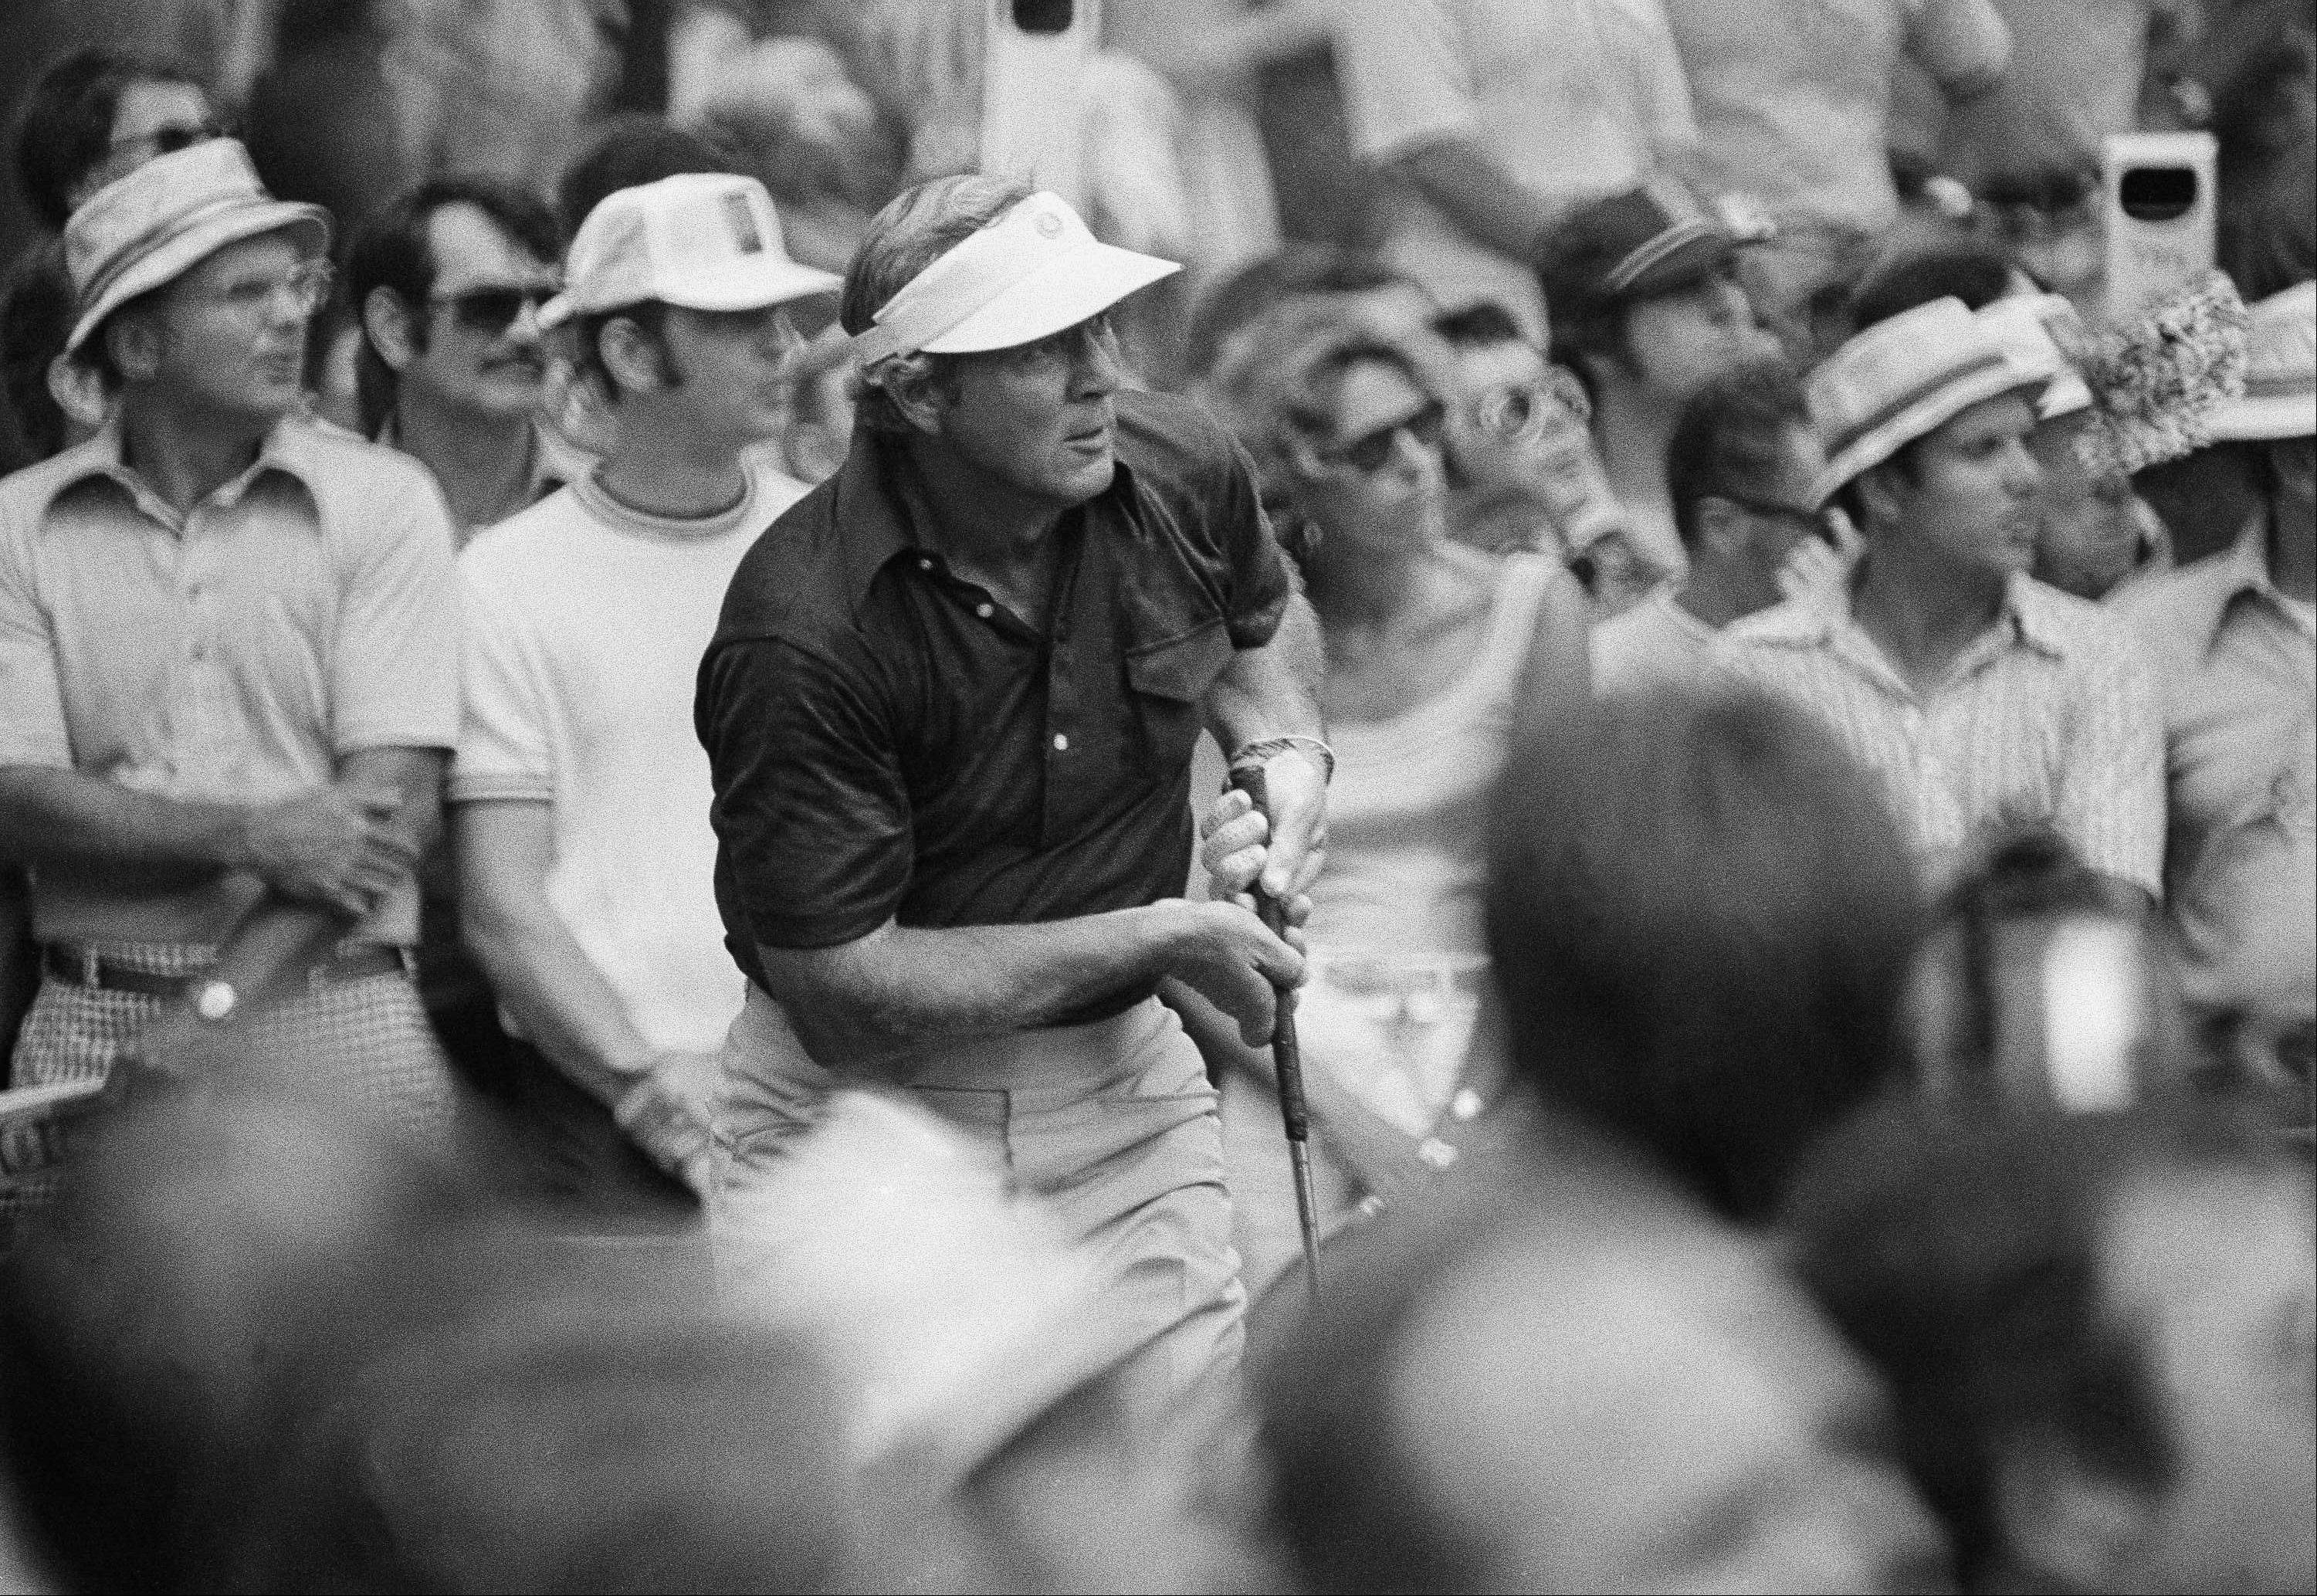 The crowd of spectators at Medinah Country Club in Illinois seems to be pressing in on Arnold Palmer of Ligonier, Pa., as he tees off in the first round of the U. S. Open, June 19, 1975.